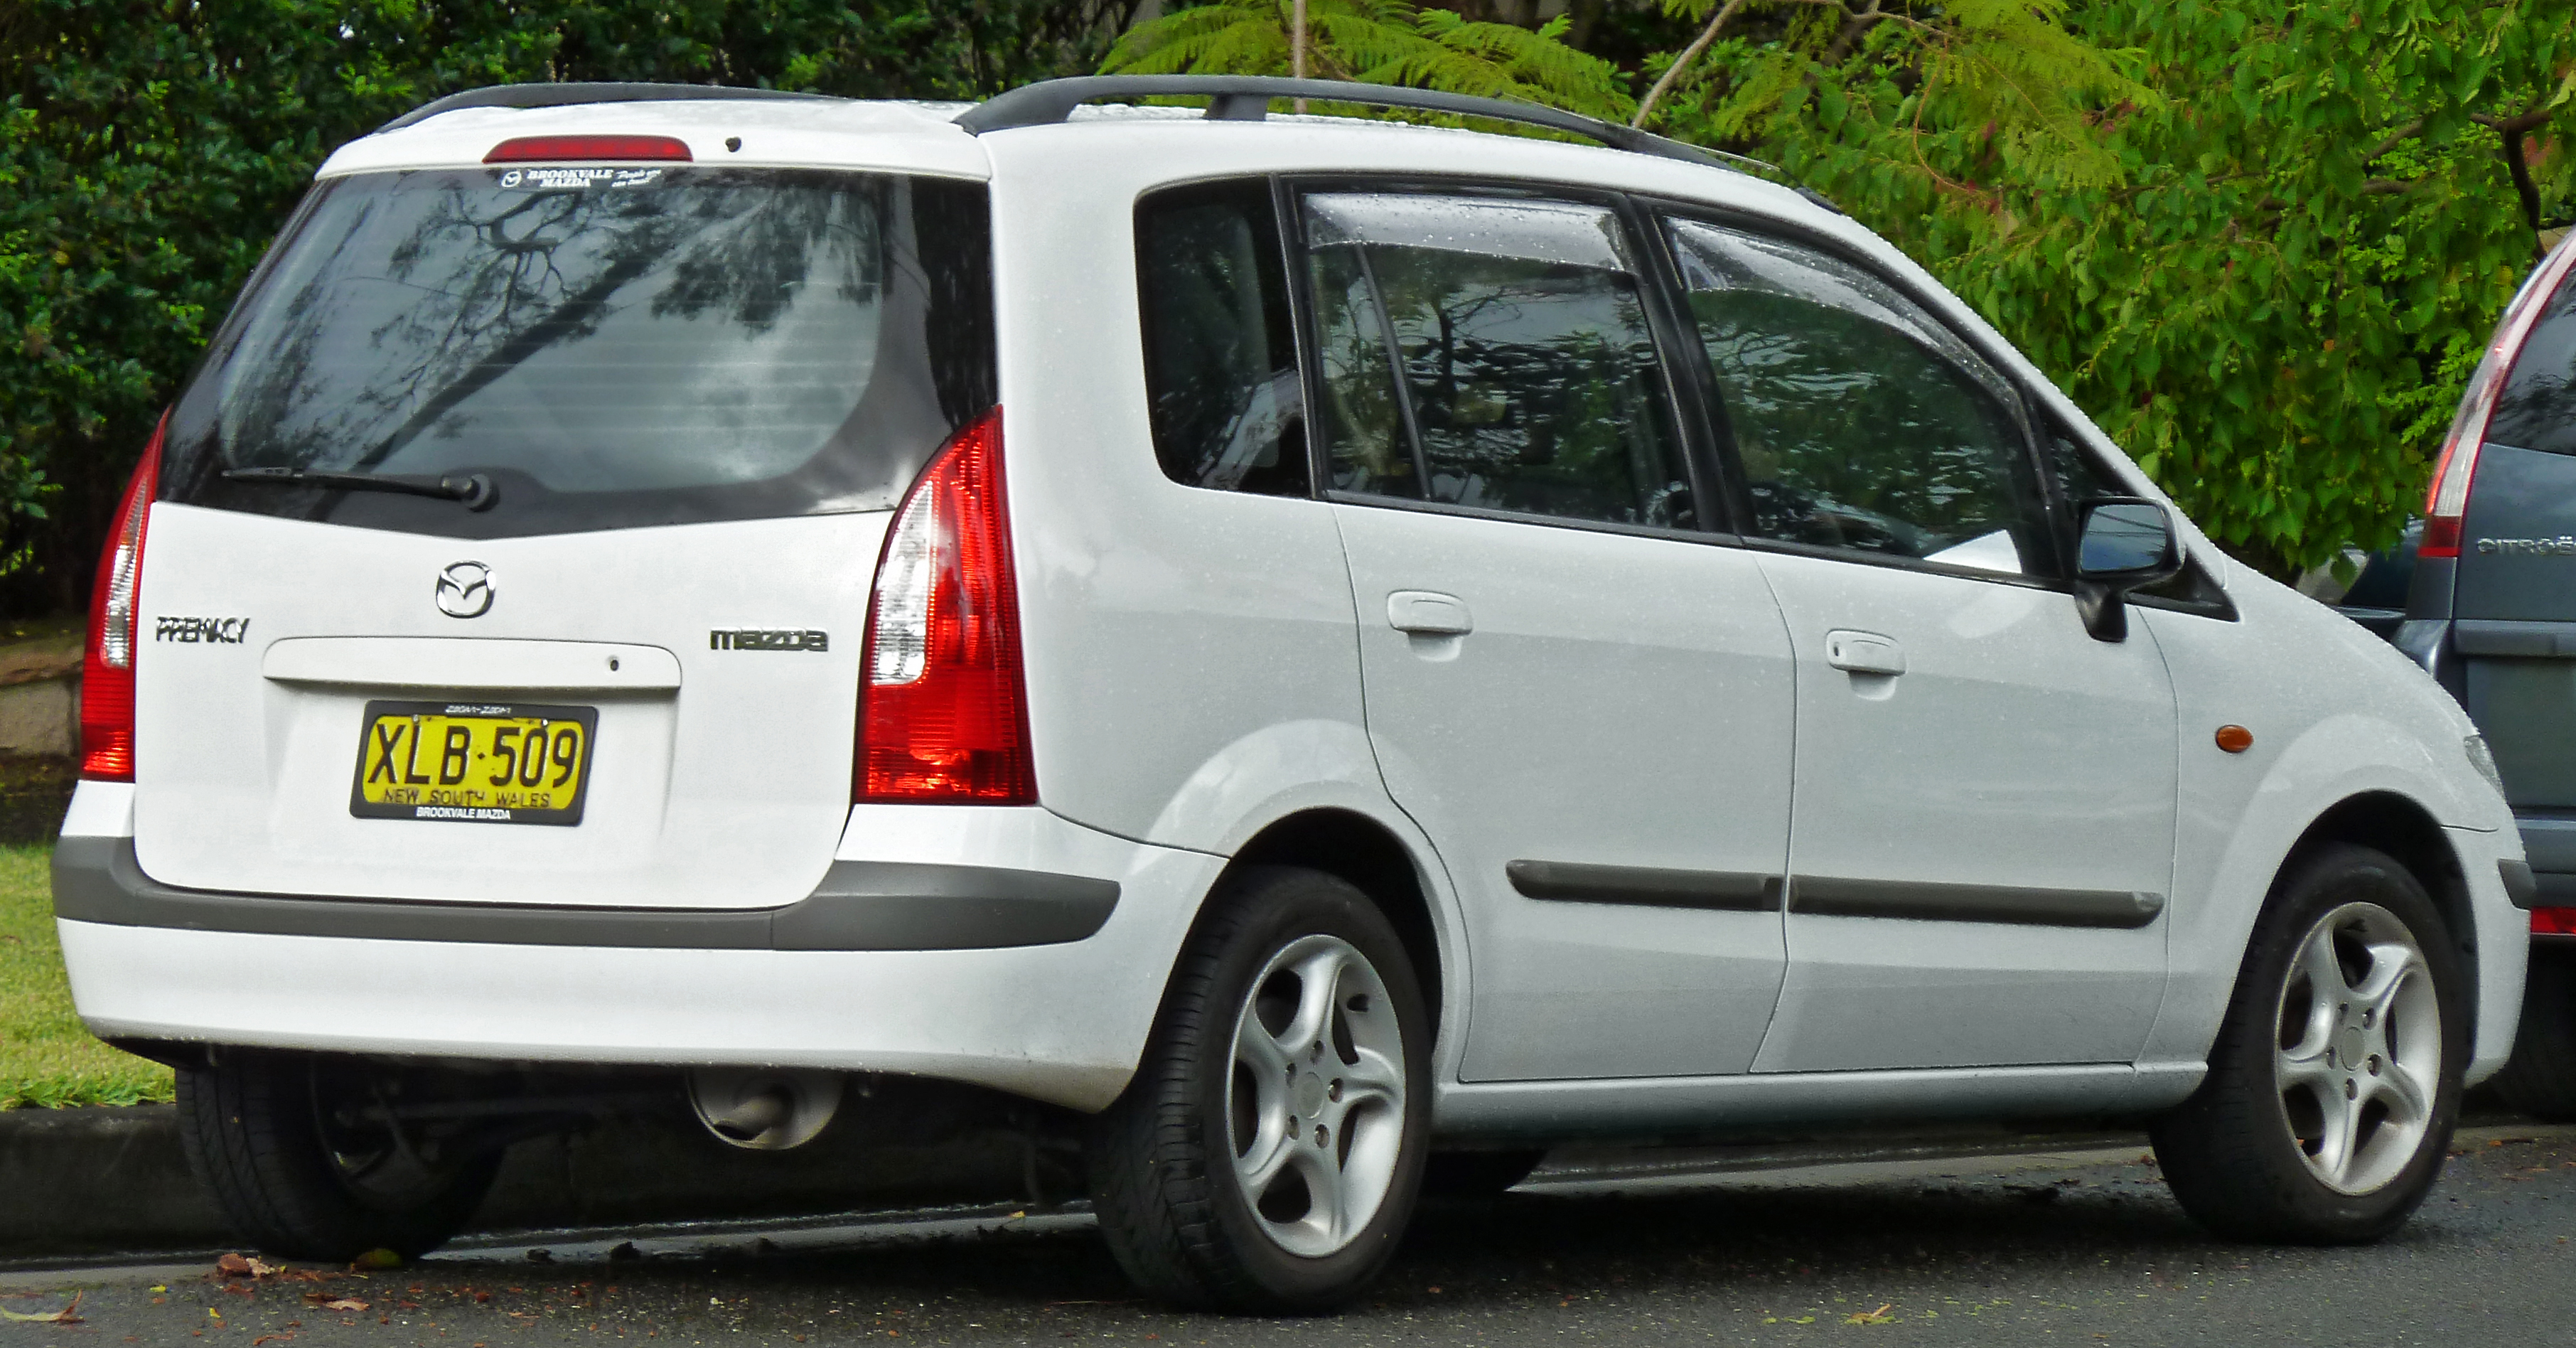 file:2001-2002 mazda premacy (cp) hatchback (2011-04-28) 02